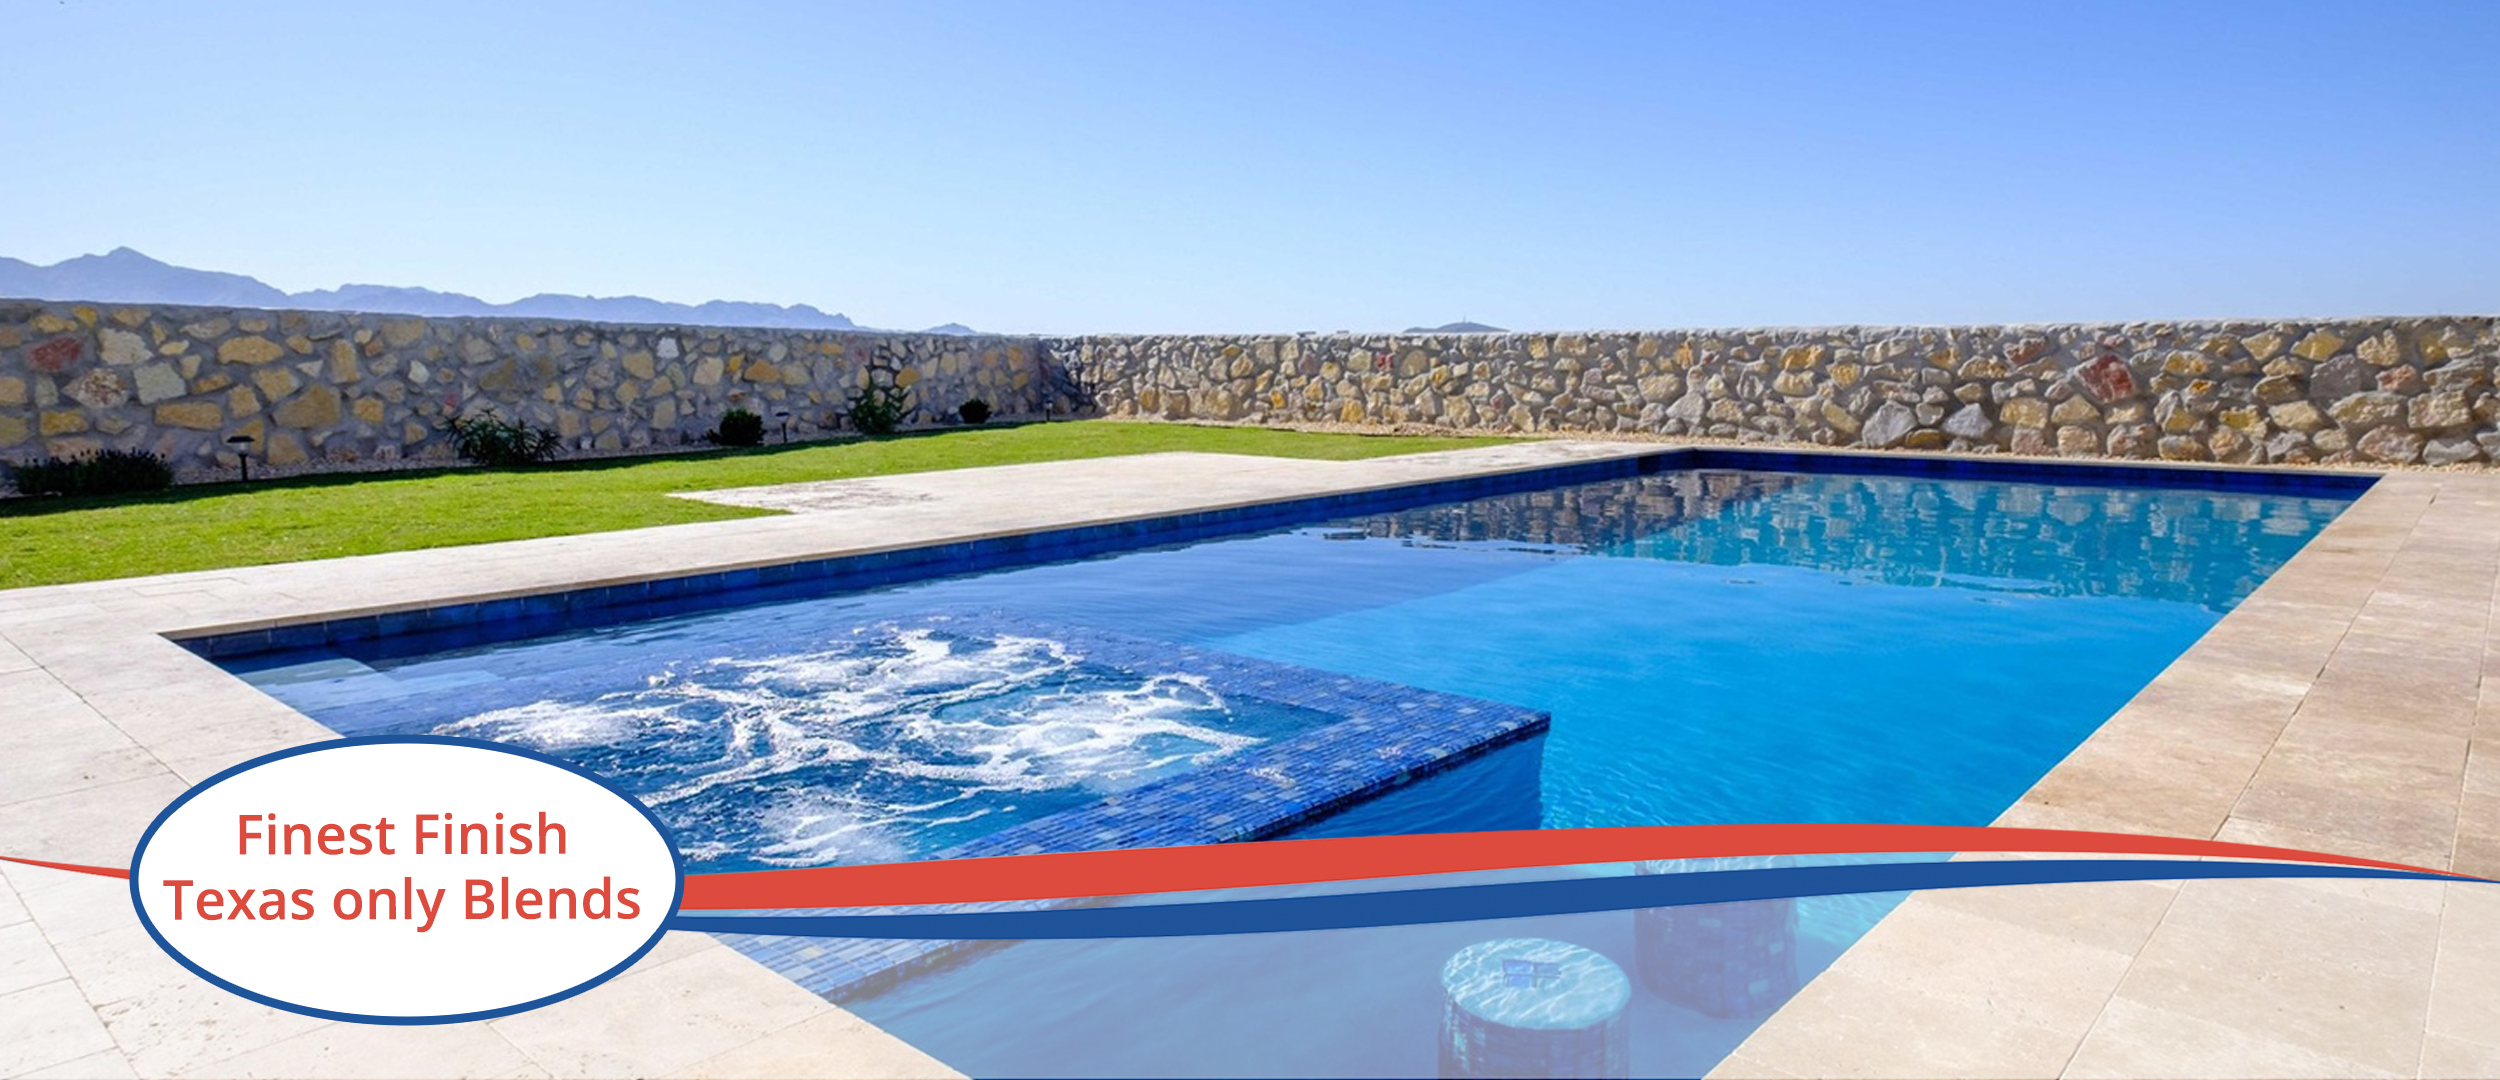 Finest Finish Sparkle QUartz pool with water feature and seating